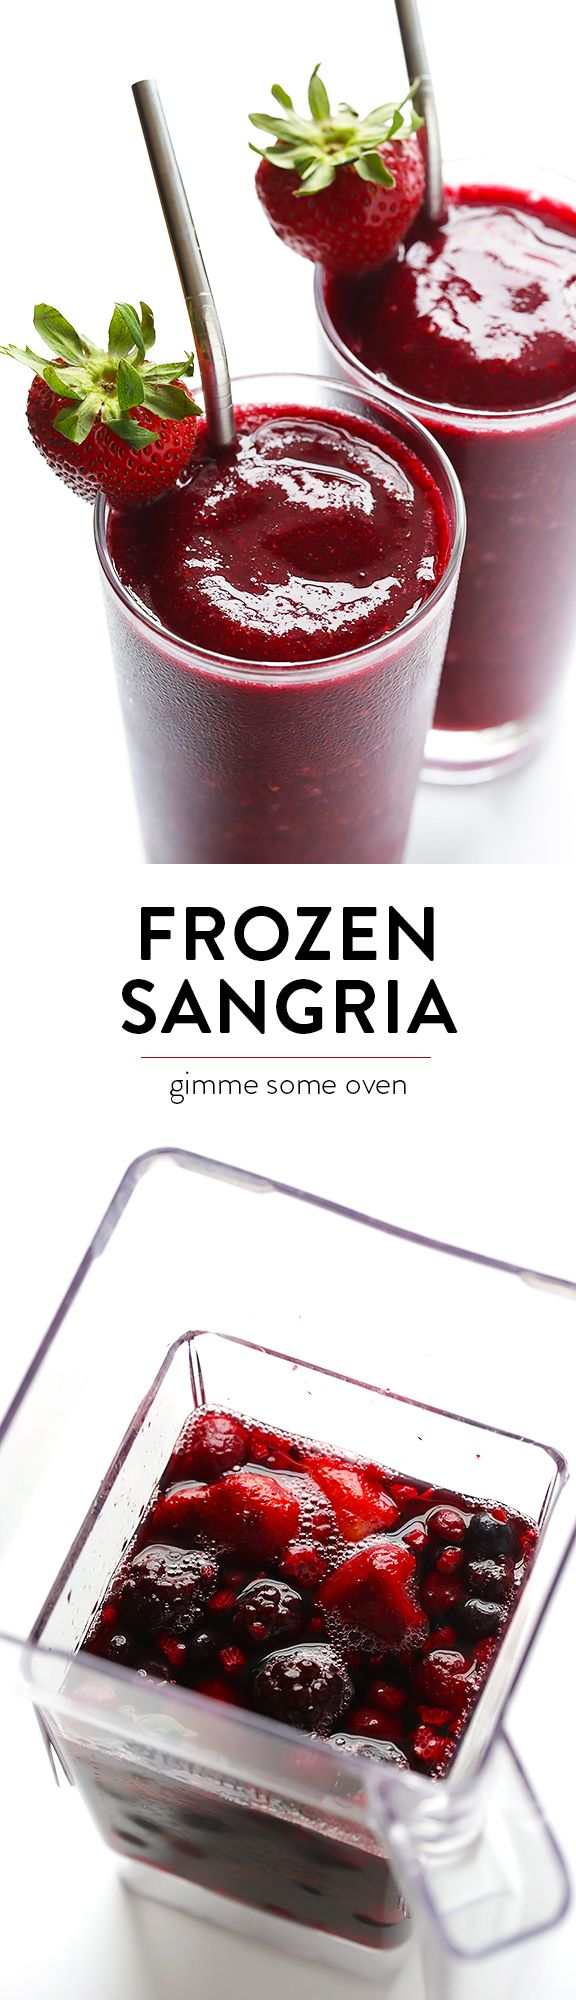 Frozen Sangria by gimmesomeoven: Ready to go in about 2 minutes. #Cocktail #Frozen_Sangria